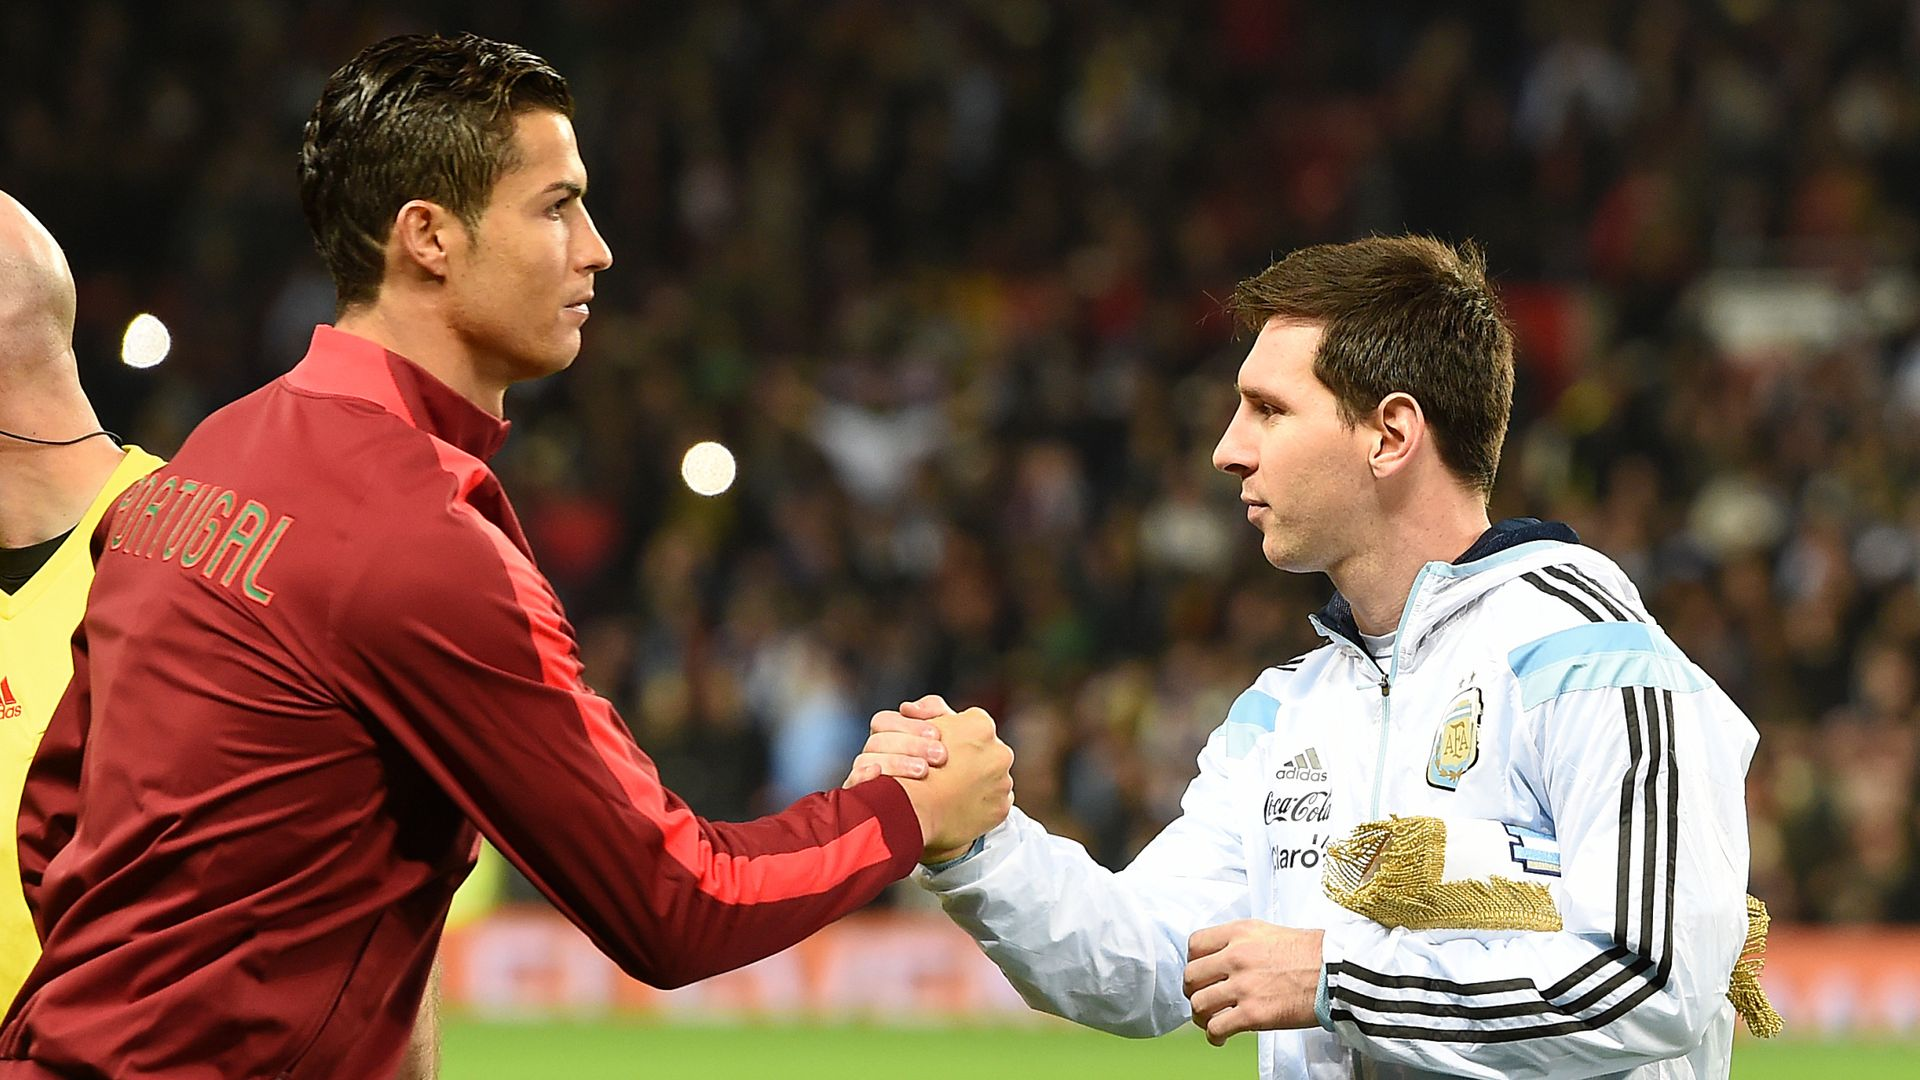 Beckham: Inter Miami would love to sign Messi, Ronaldo